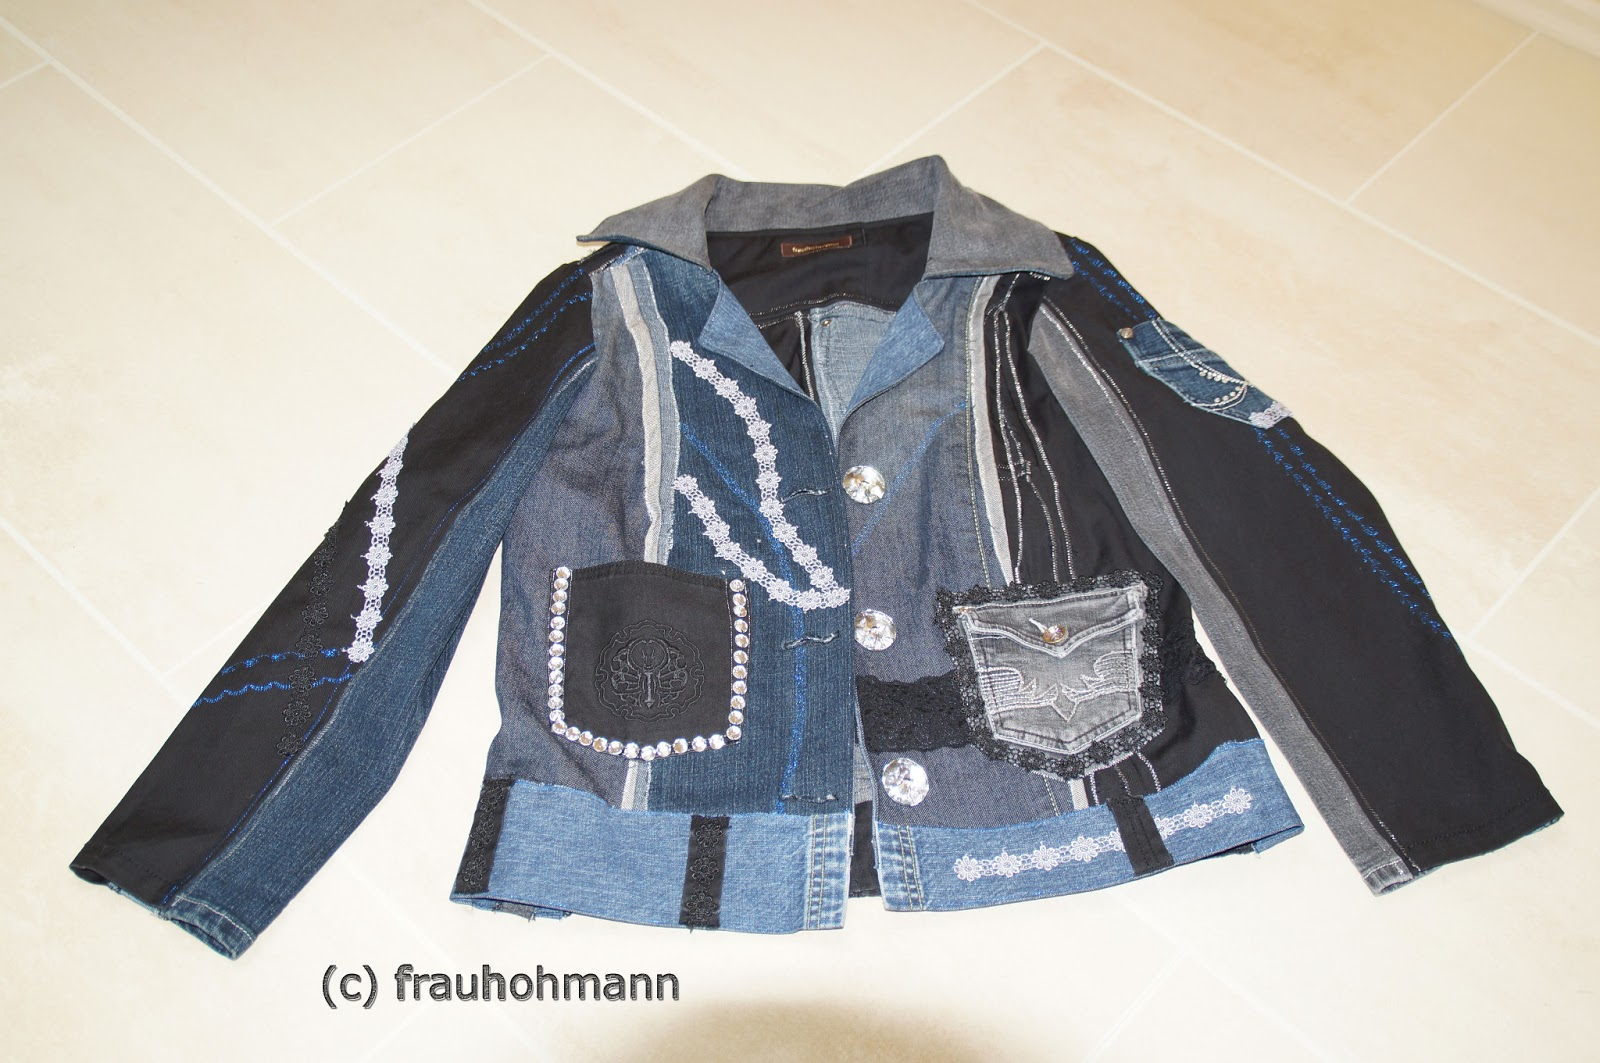 willkommen bei frauhohmann jeansjacke aus alten jeans. Black Bedroom Furniture Sets. Home Design Ideas